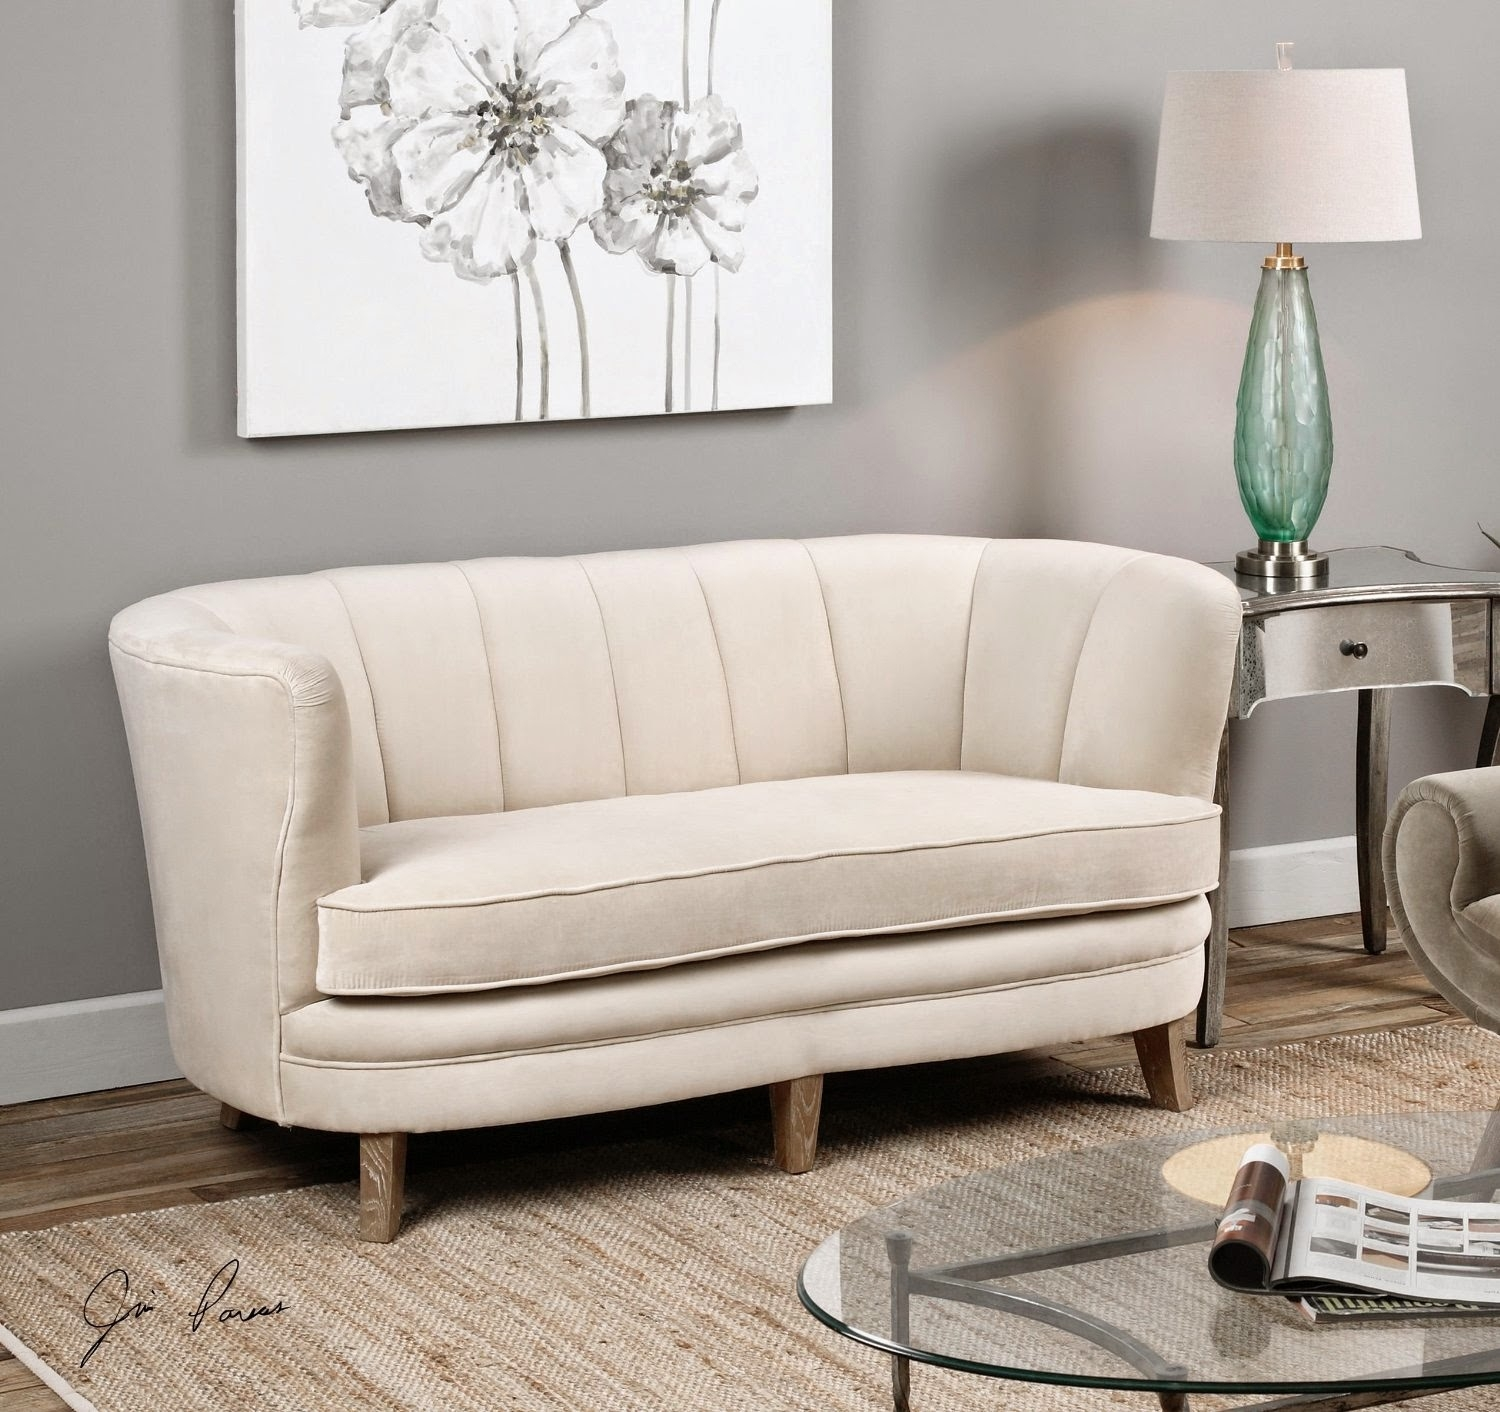 Contemporary Sectional Sofas The Best Home Design Inside Contemporary Curved Sofas (Image 3 of 15)